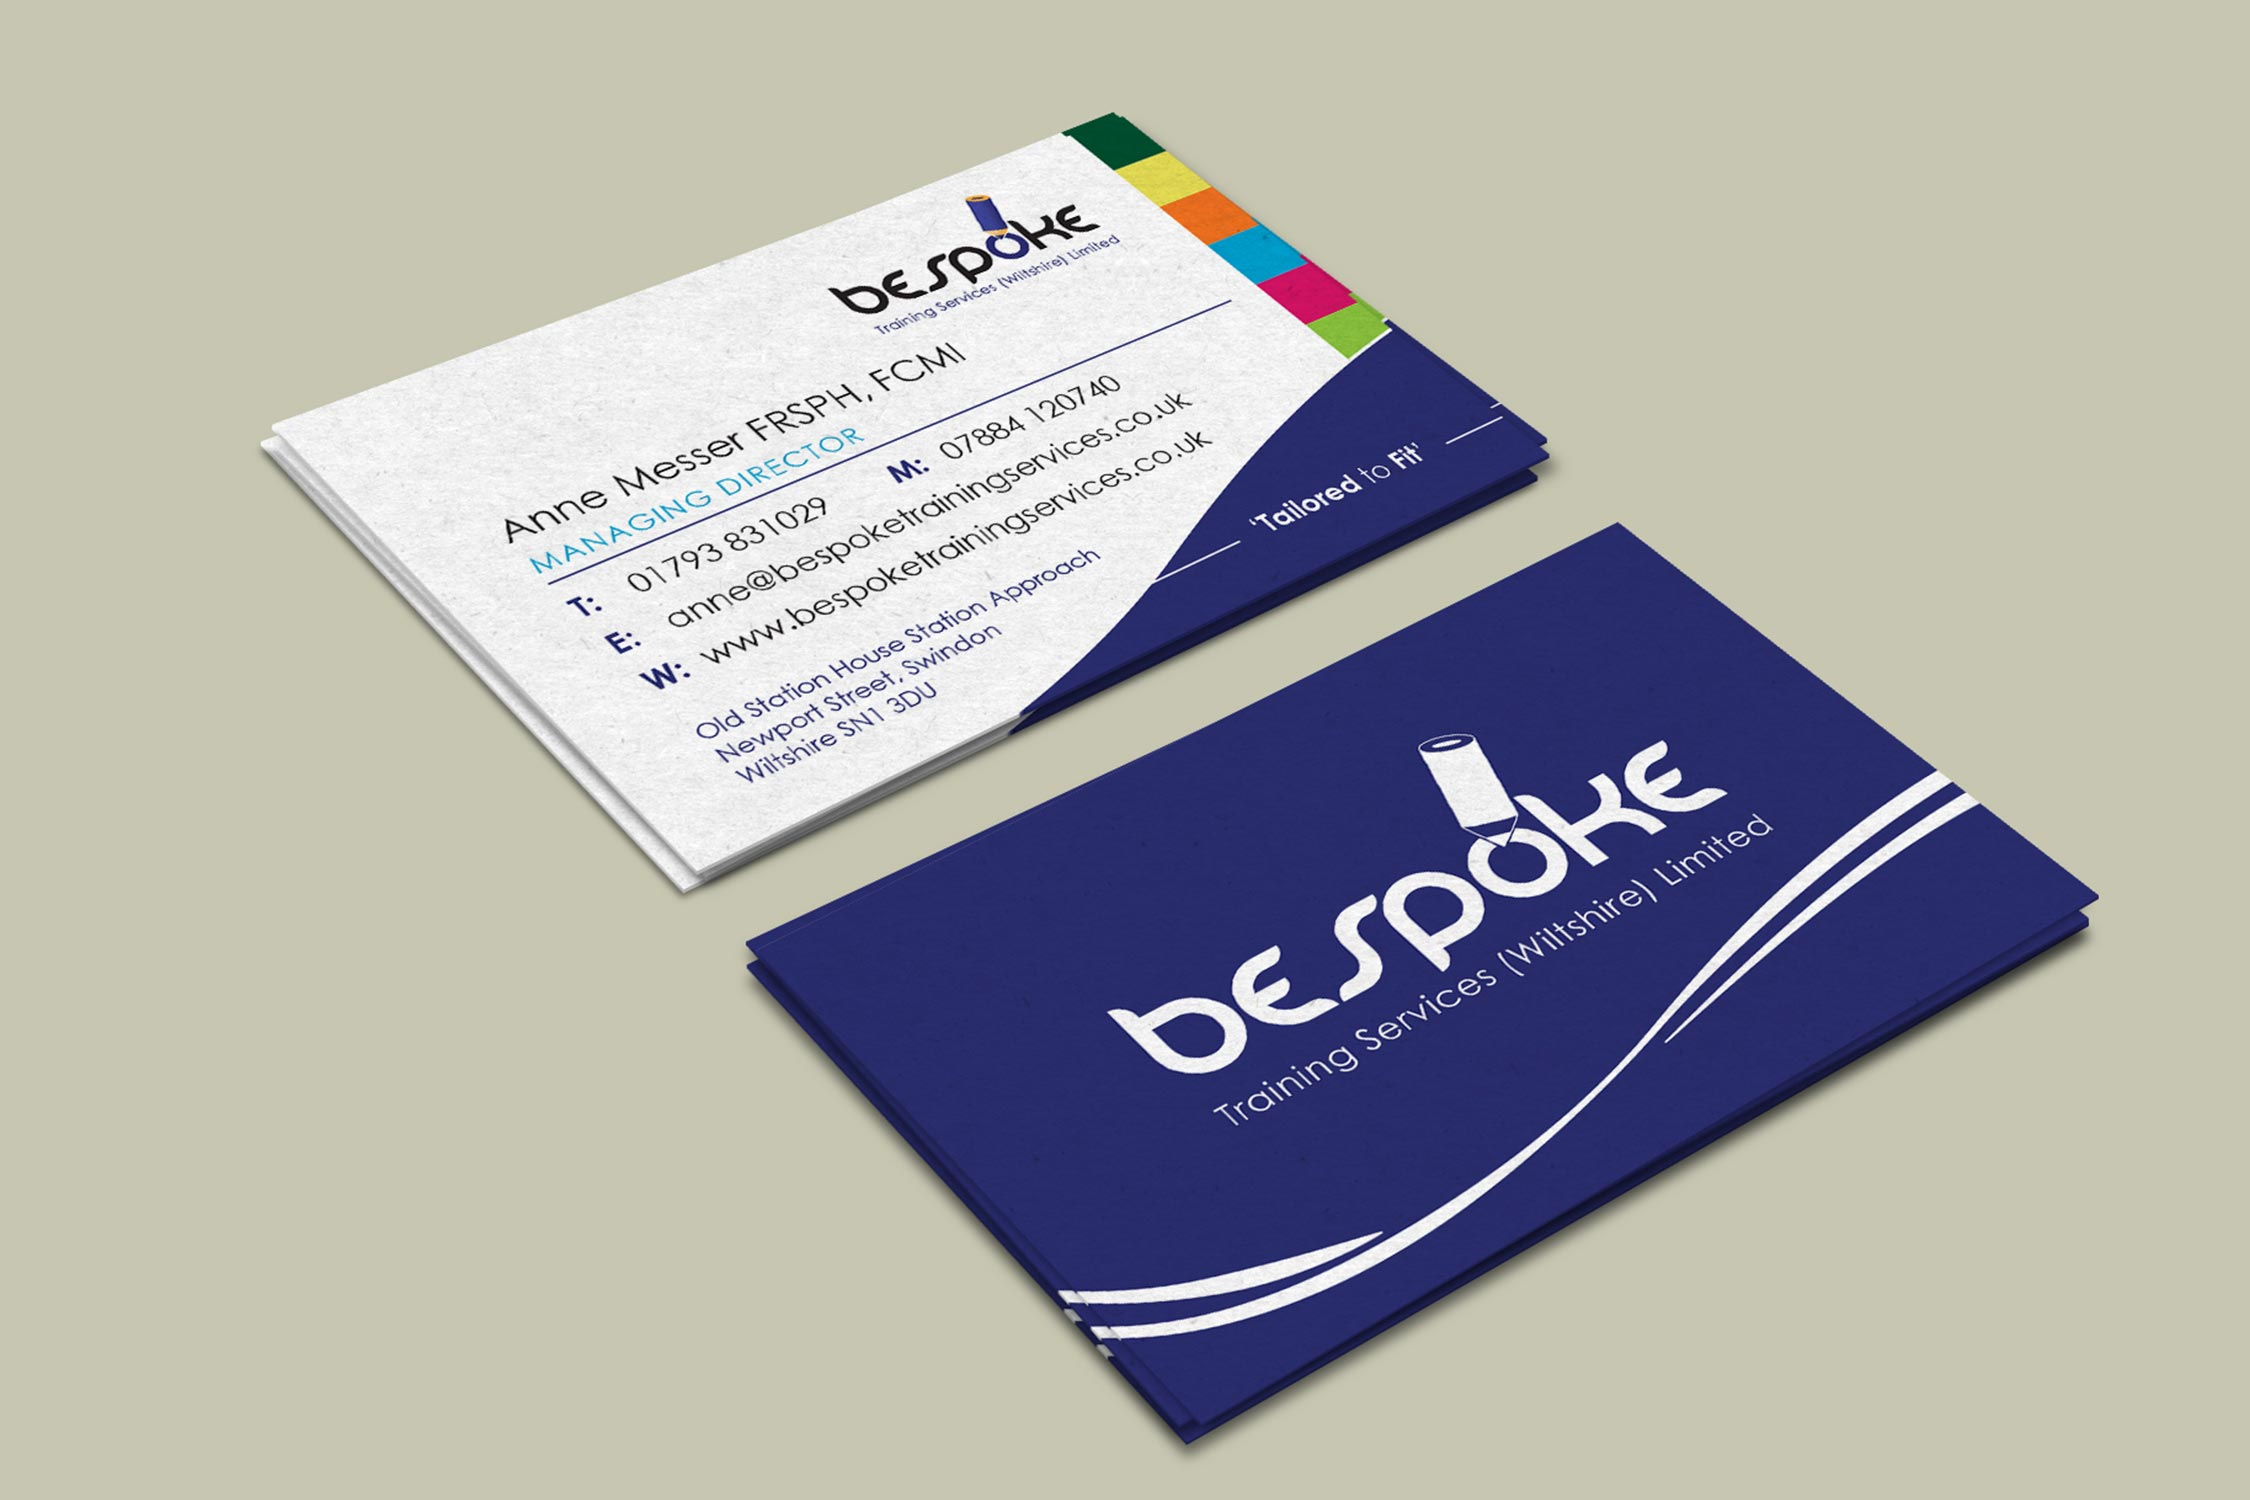 Premium business cards nyc image collections card design and card bespoke business card printing london choice image card design and bespoke premium business cards choice image reheart Gallery